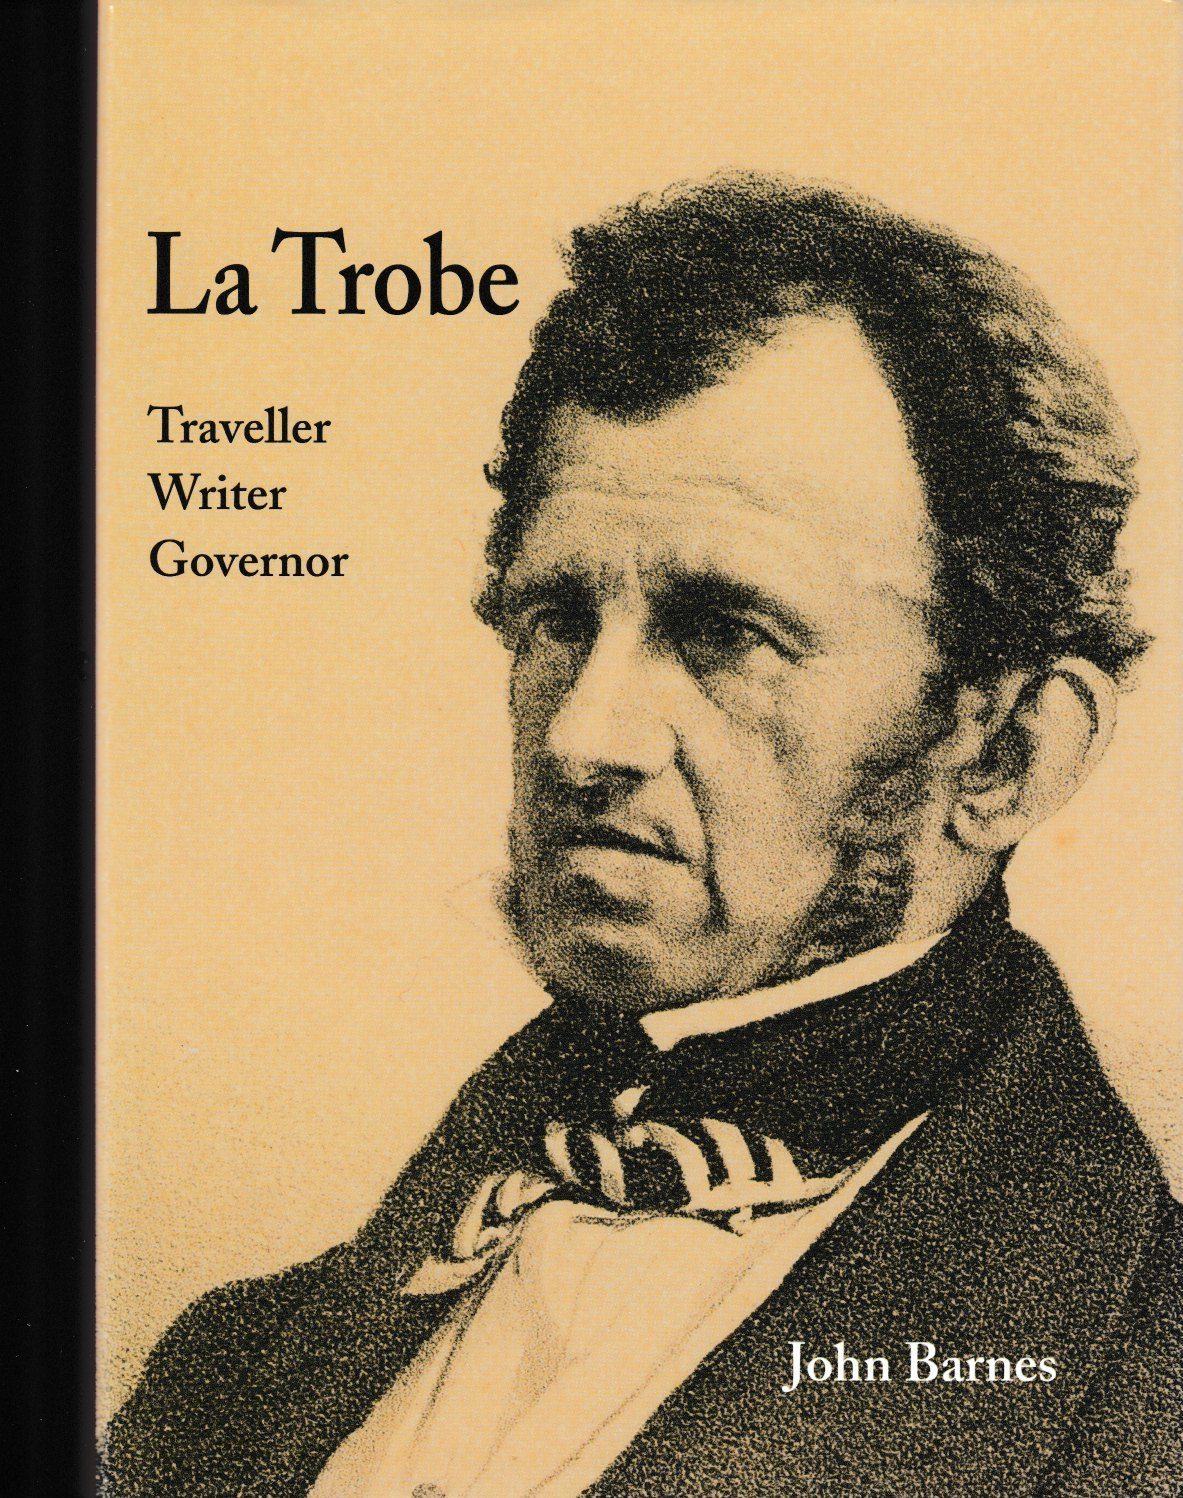 La Trobe - Traveller Writer Governor